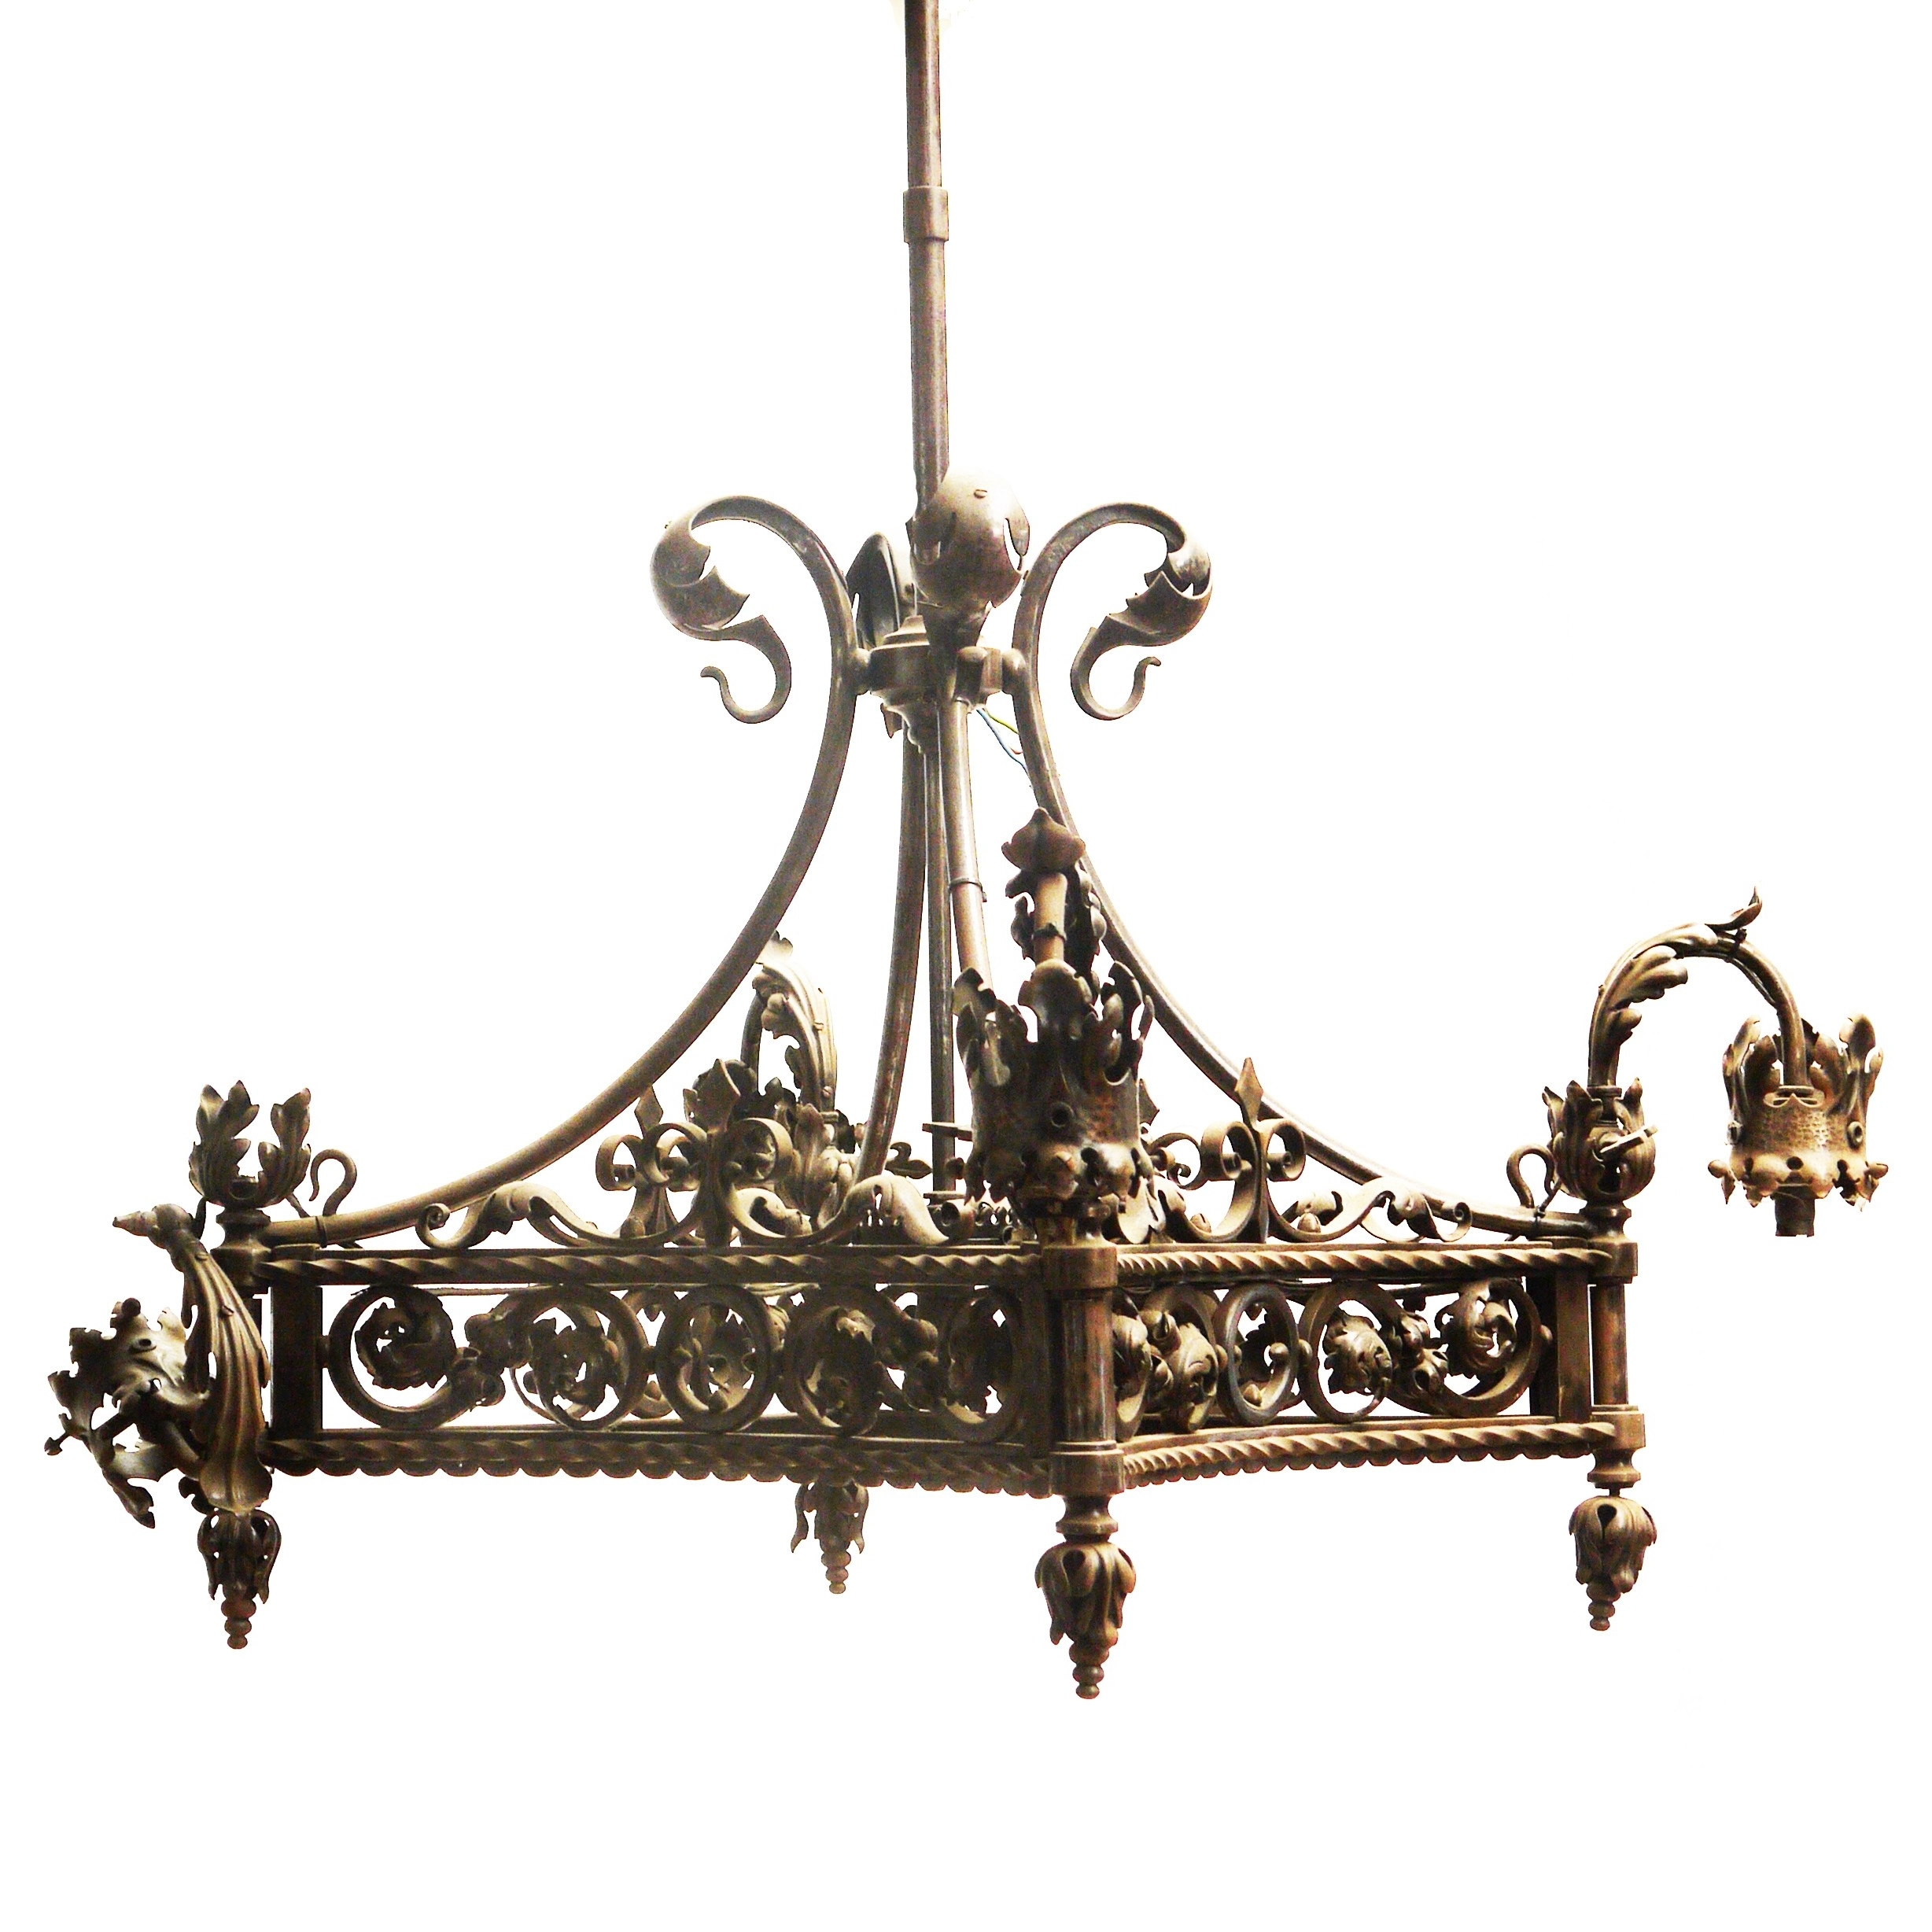 Home Design : Vintage Wrought Iron Chandelier Vintage Floral Wrought With Regard To Well Liked Vintage Wrought Iron Chandelier (View 6 of 15)